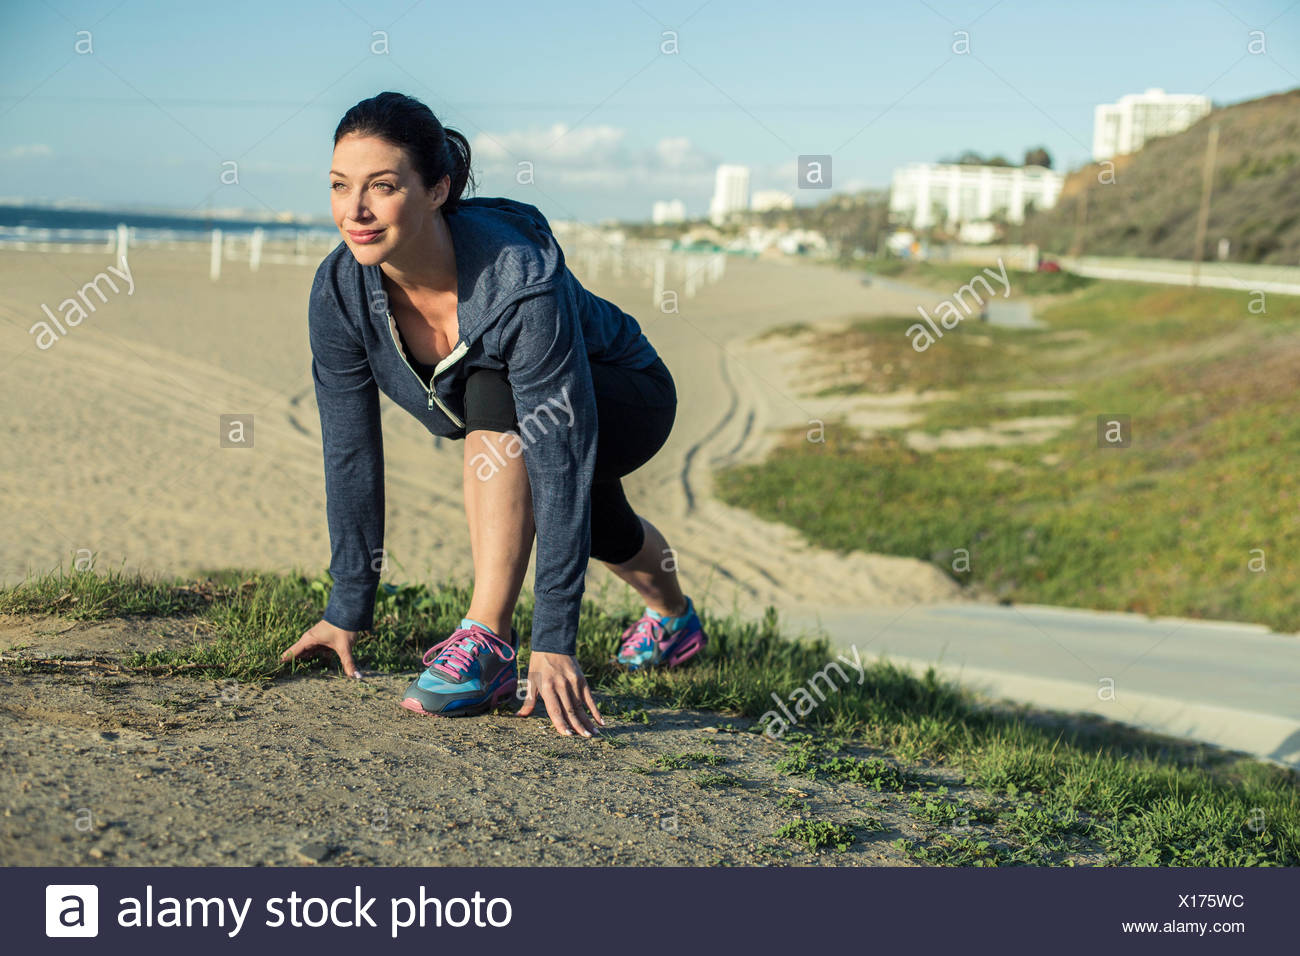 Jogger on her mark by beach Stock Photo